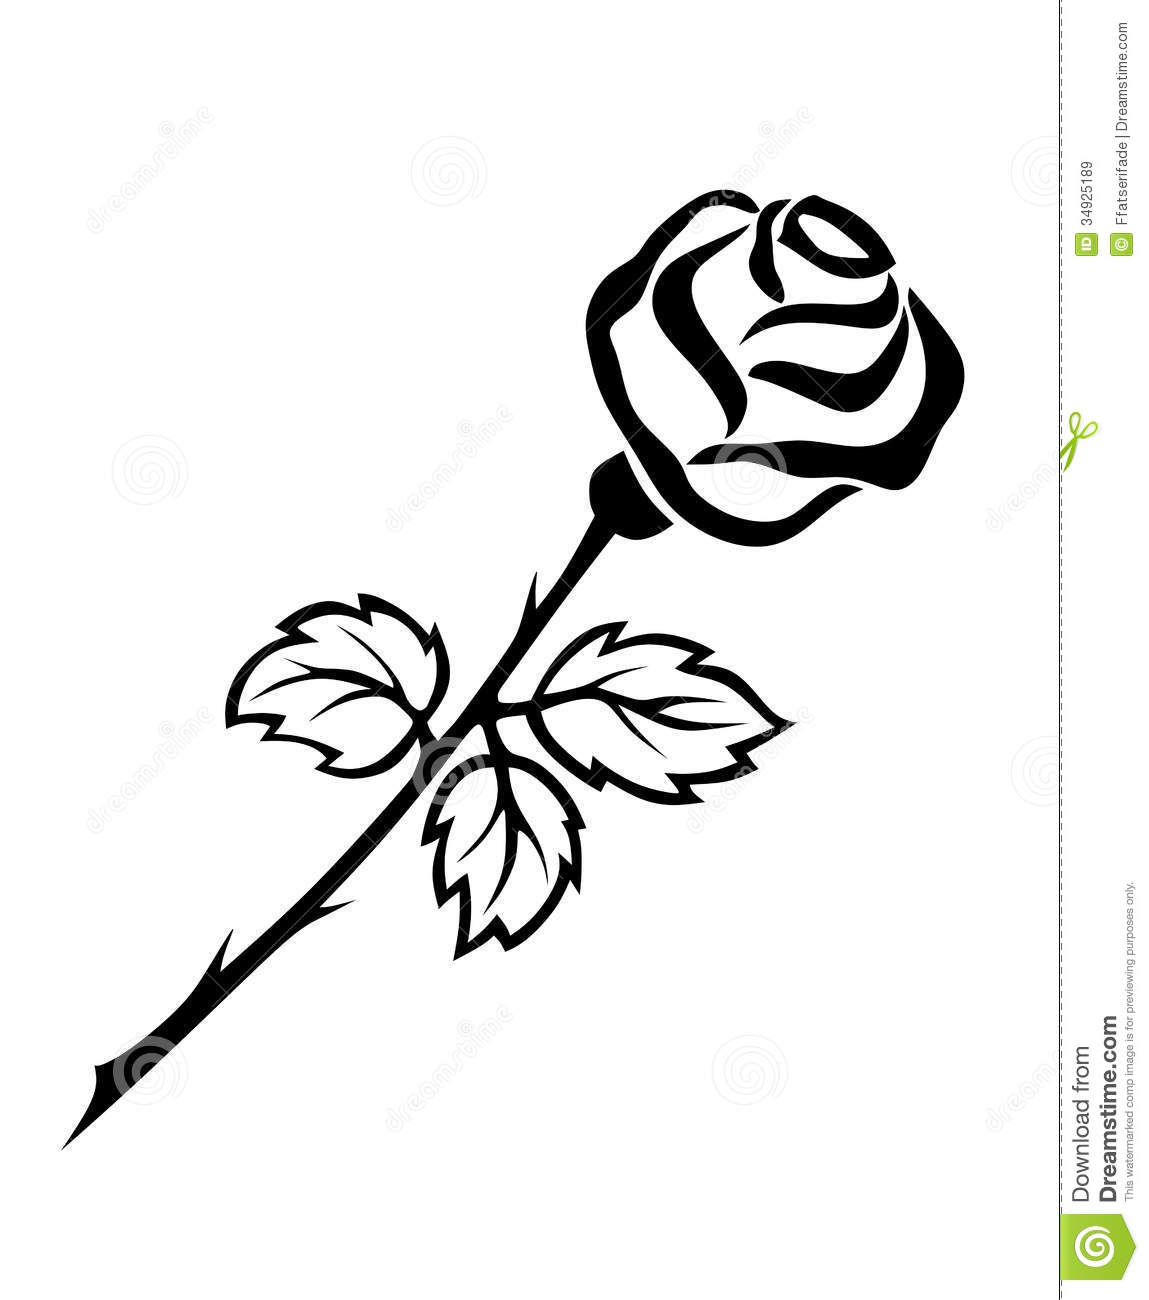 White Rose clipart simple #10